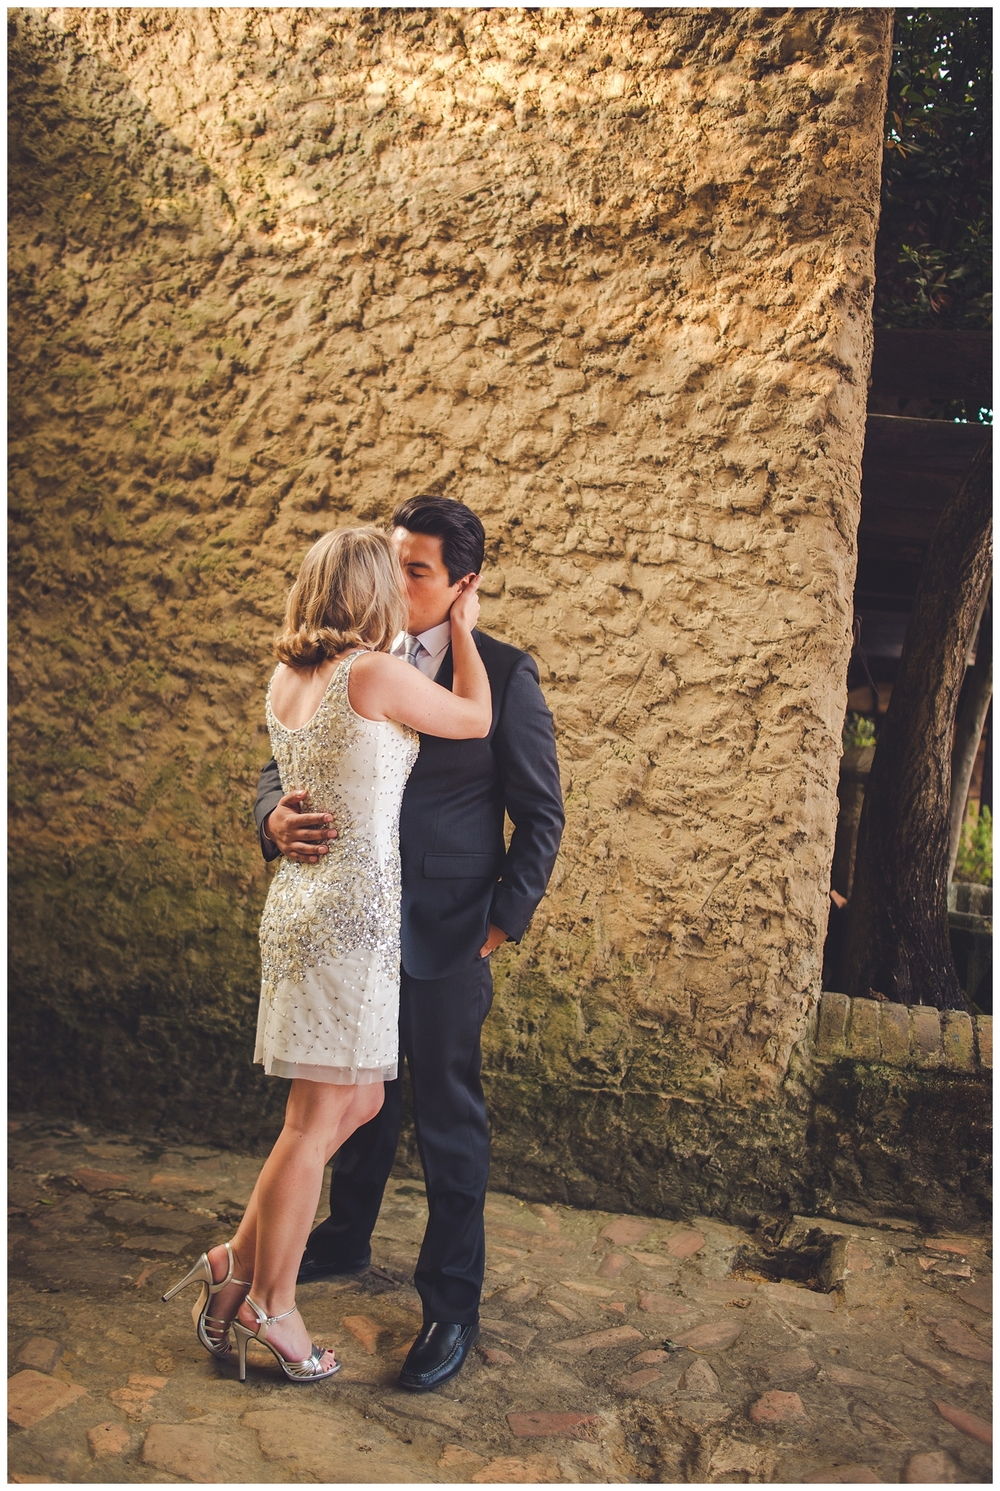 By Kara - By Kara Photo - Kara Evans - Bogota Colombia Vow Renewal - Destination Wedding Photographer - Bogota Colombia Wedding Photographer - El Portico Wedding Photographer